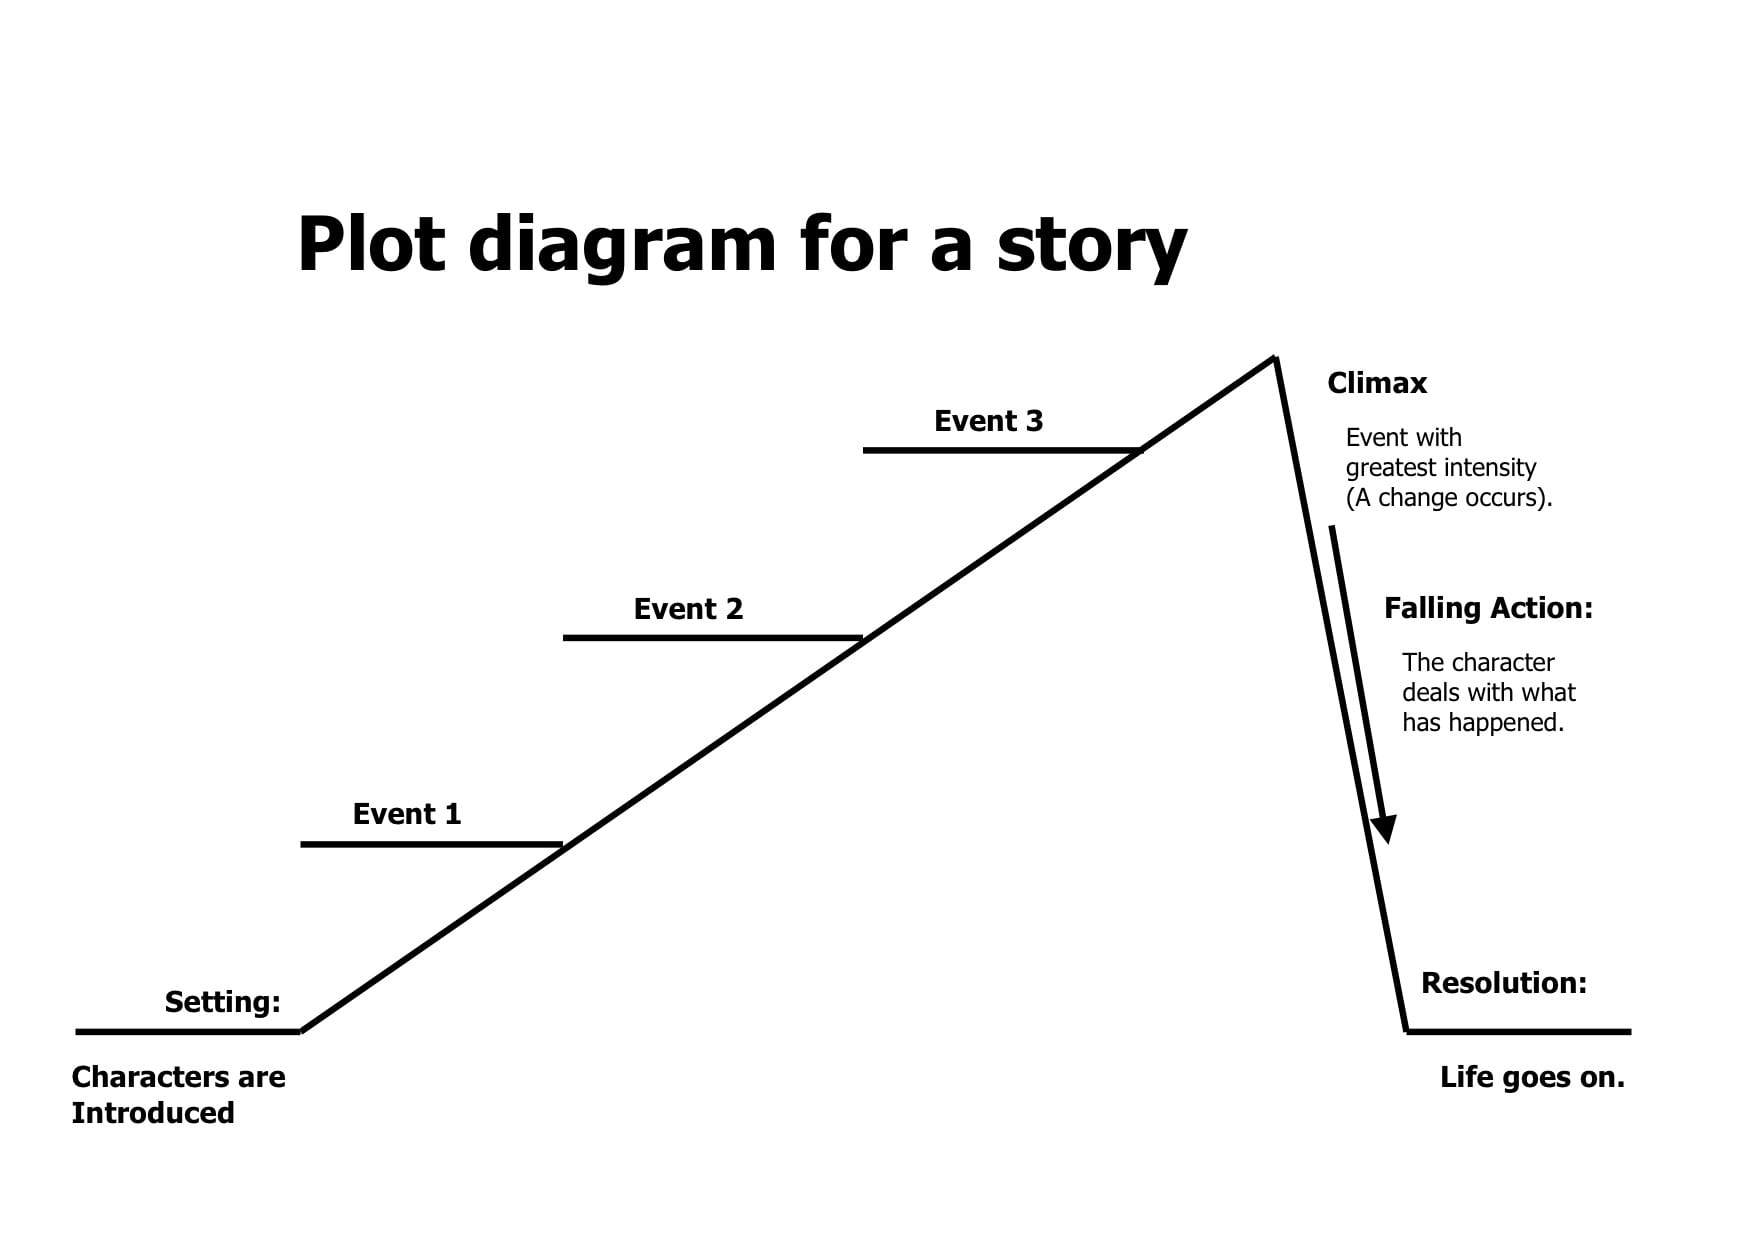 example of plot diagram with story